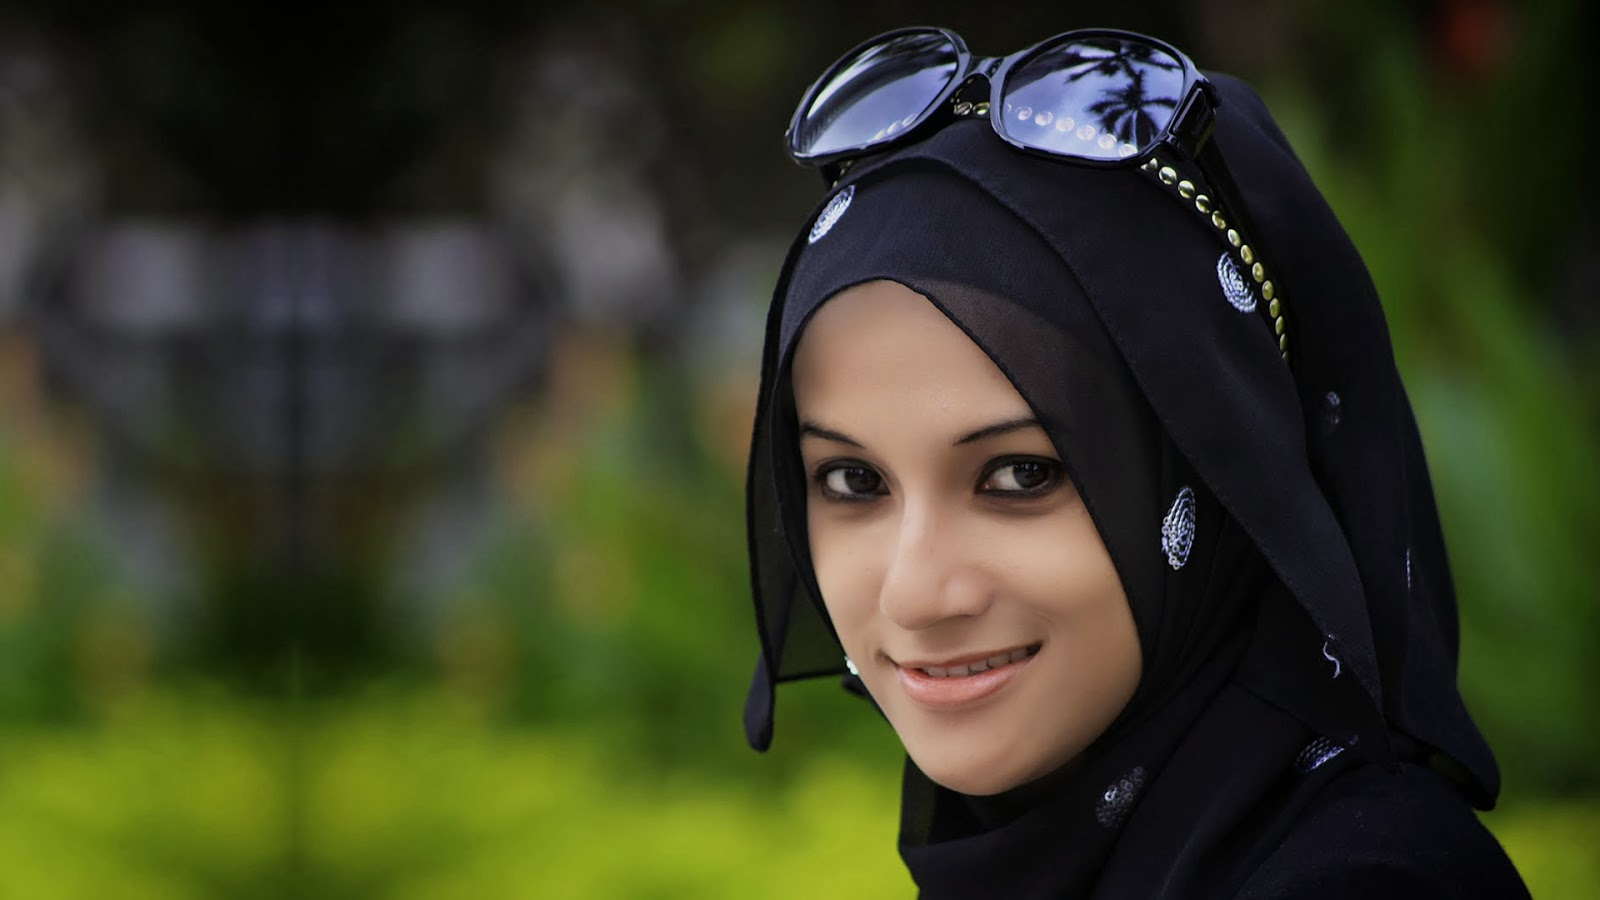 from Ty porn wallpapers of muslim girls